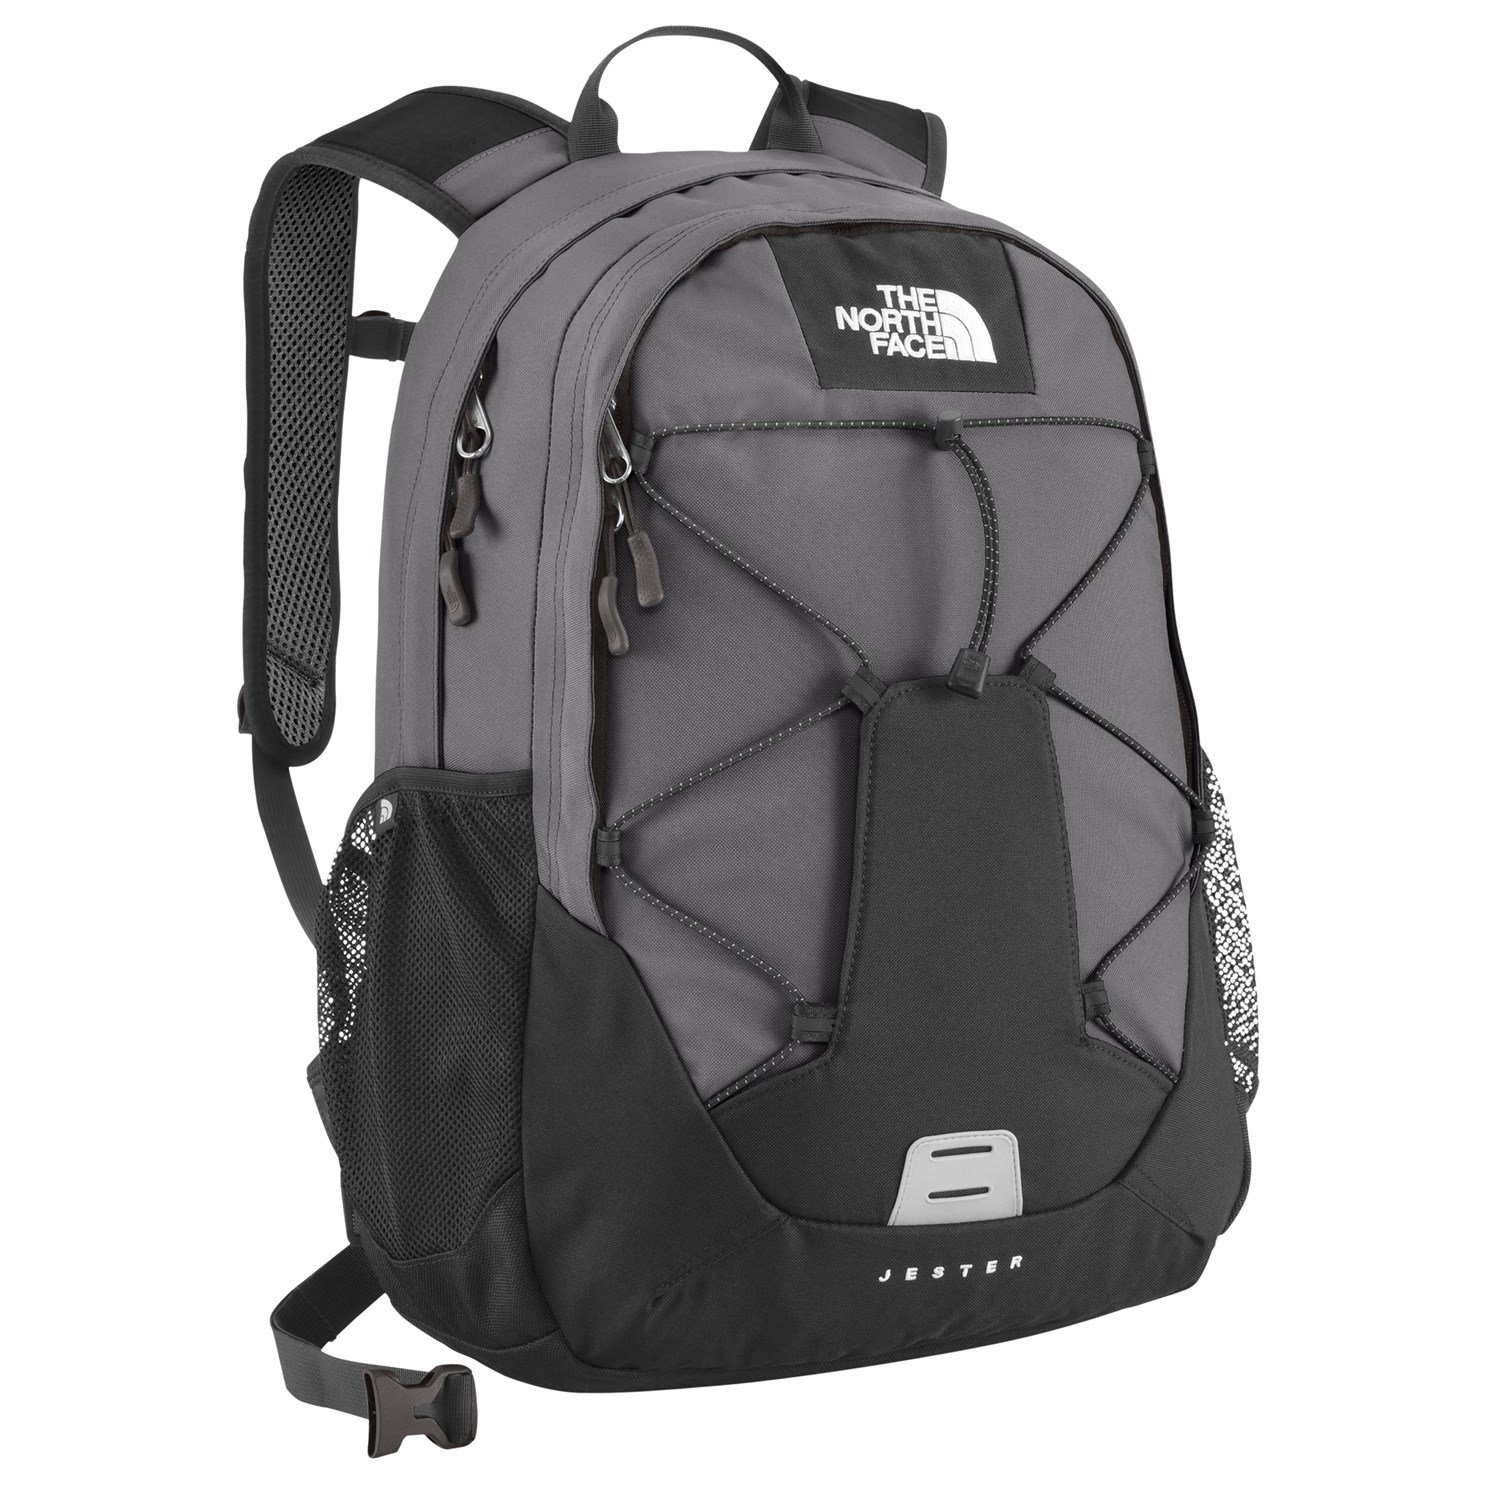 4434d3cf8 North Face Jester Backpack Grey - CEAGESP